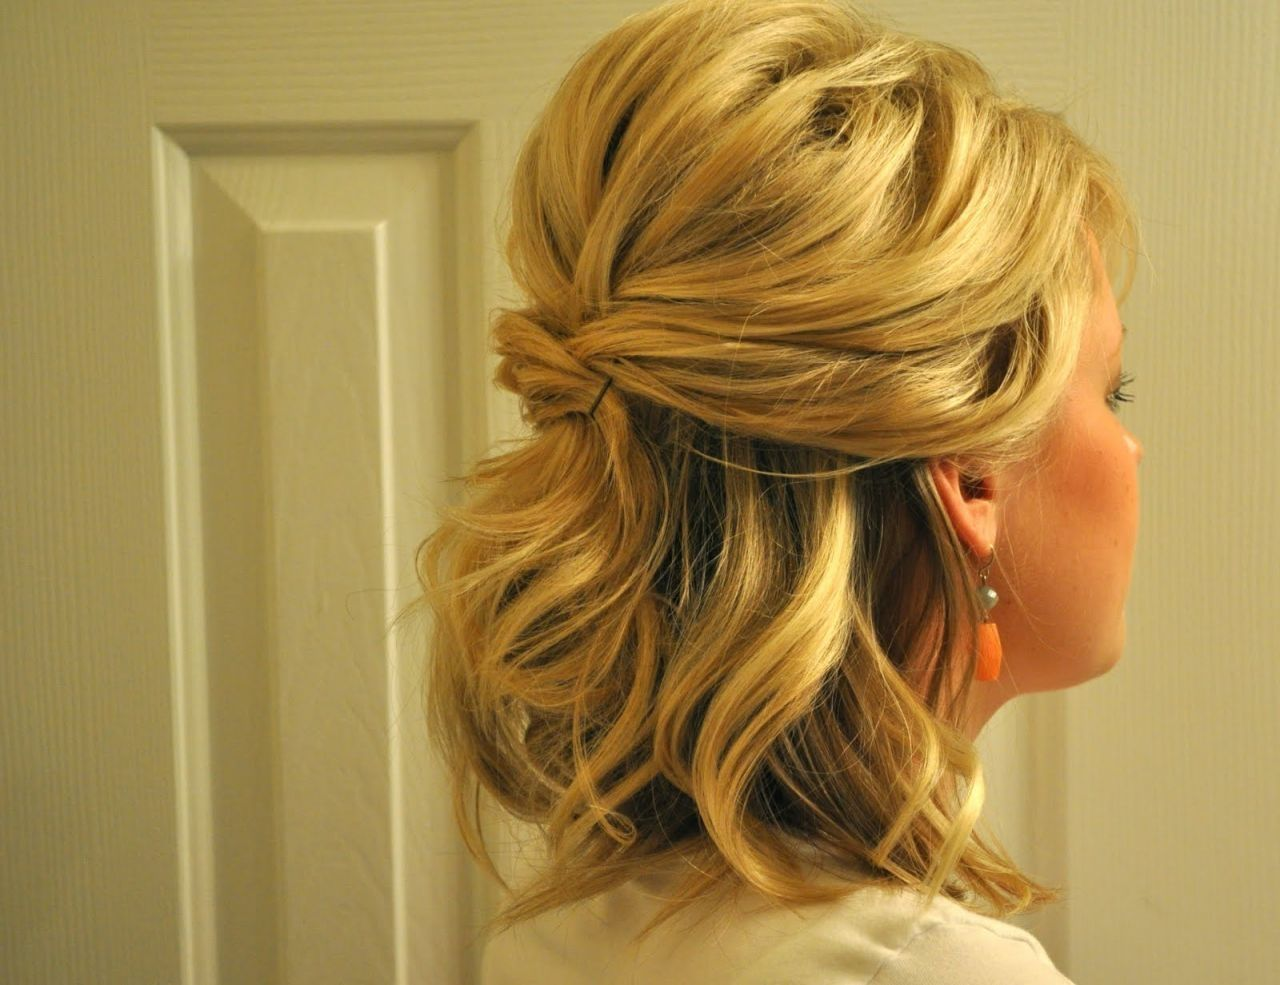 Half Up Half Down Wedding Hairstyles For Medium Length Hair: Updos For Medium Hair Half Up Half Down Half Up Half Down